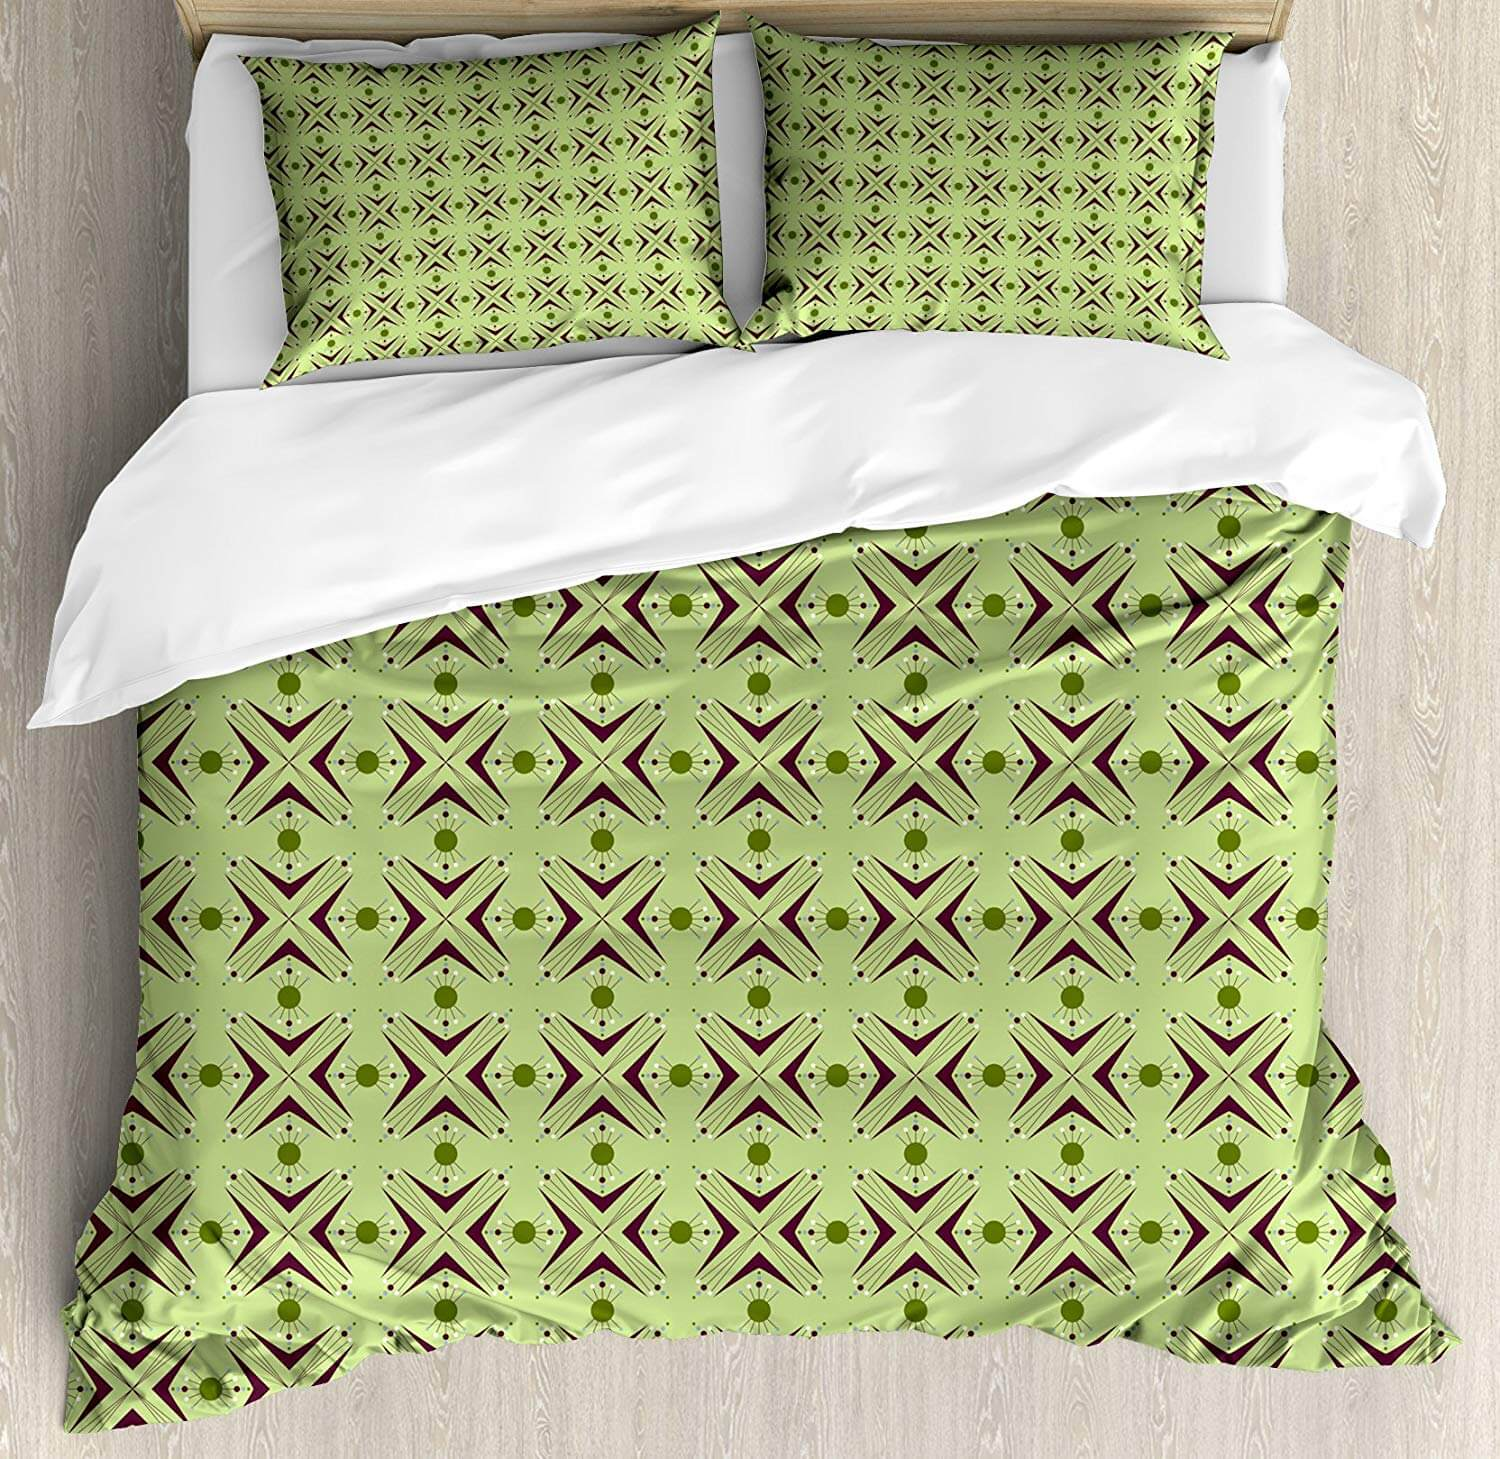 Green mid century modern bedding with a repeating geometric cross print.